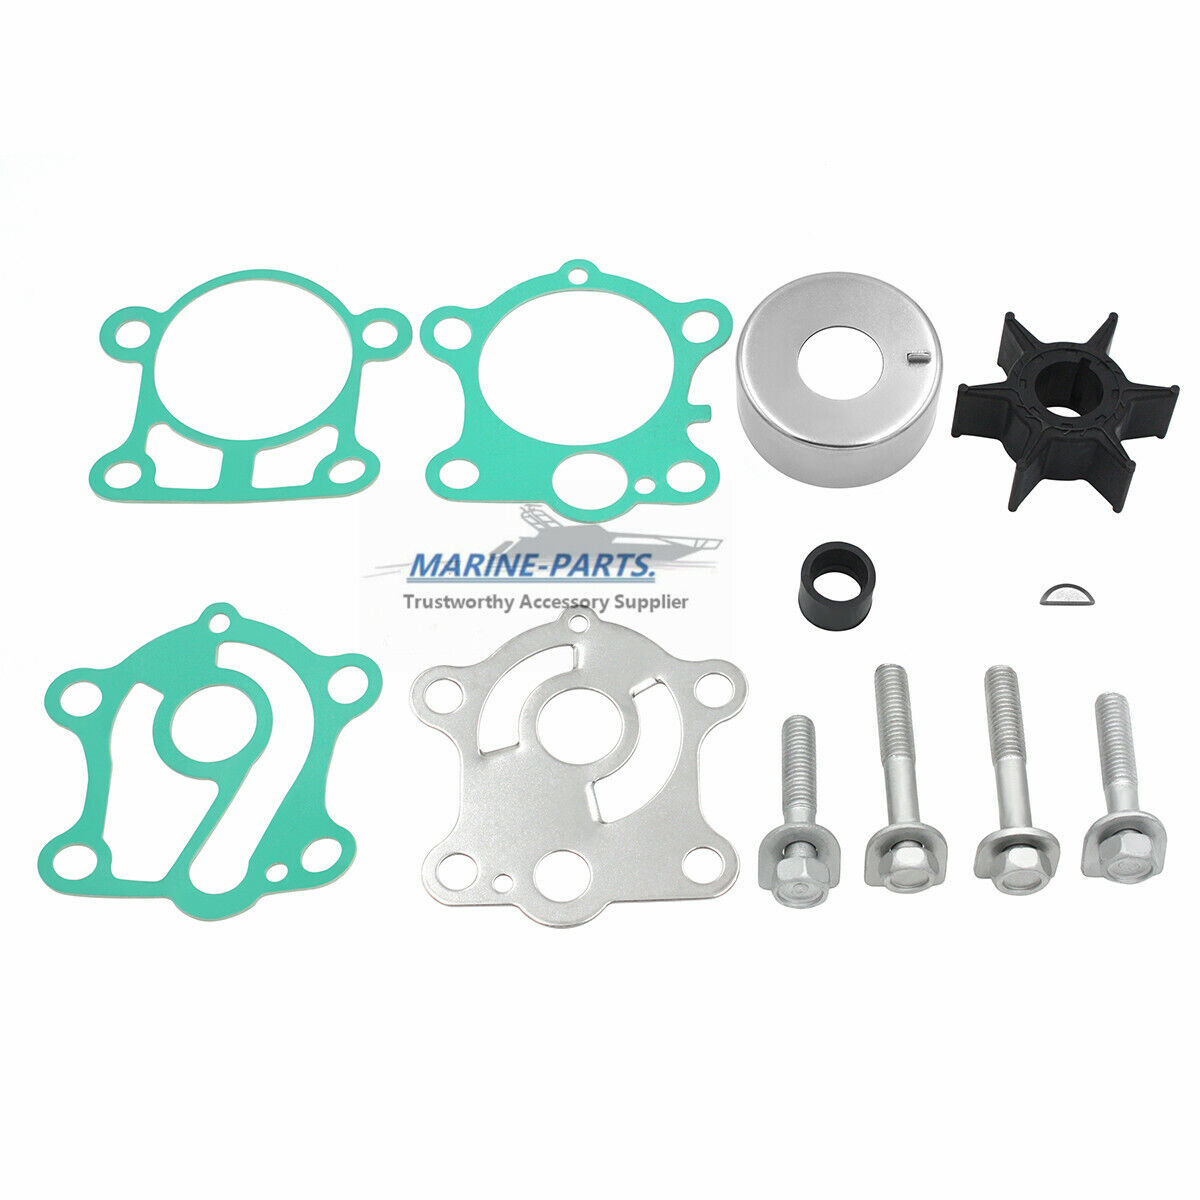 Water Pump Impeller Kit for Yamaha 25 30 40 hp  T25 F30 F40  66T-W0078-00